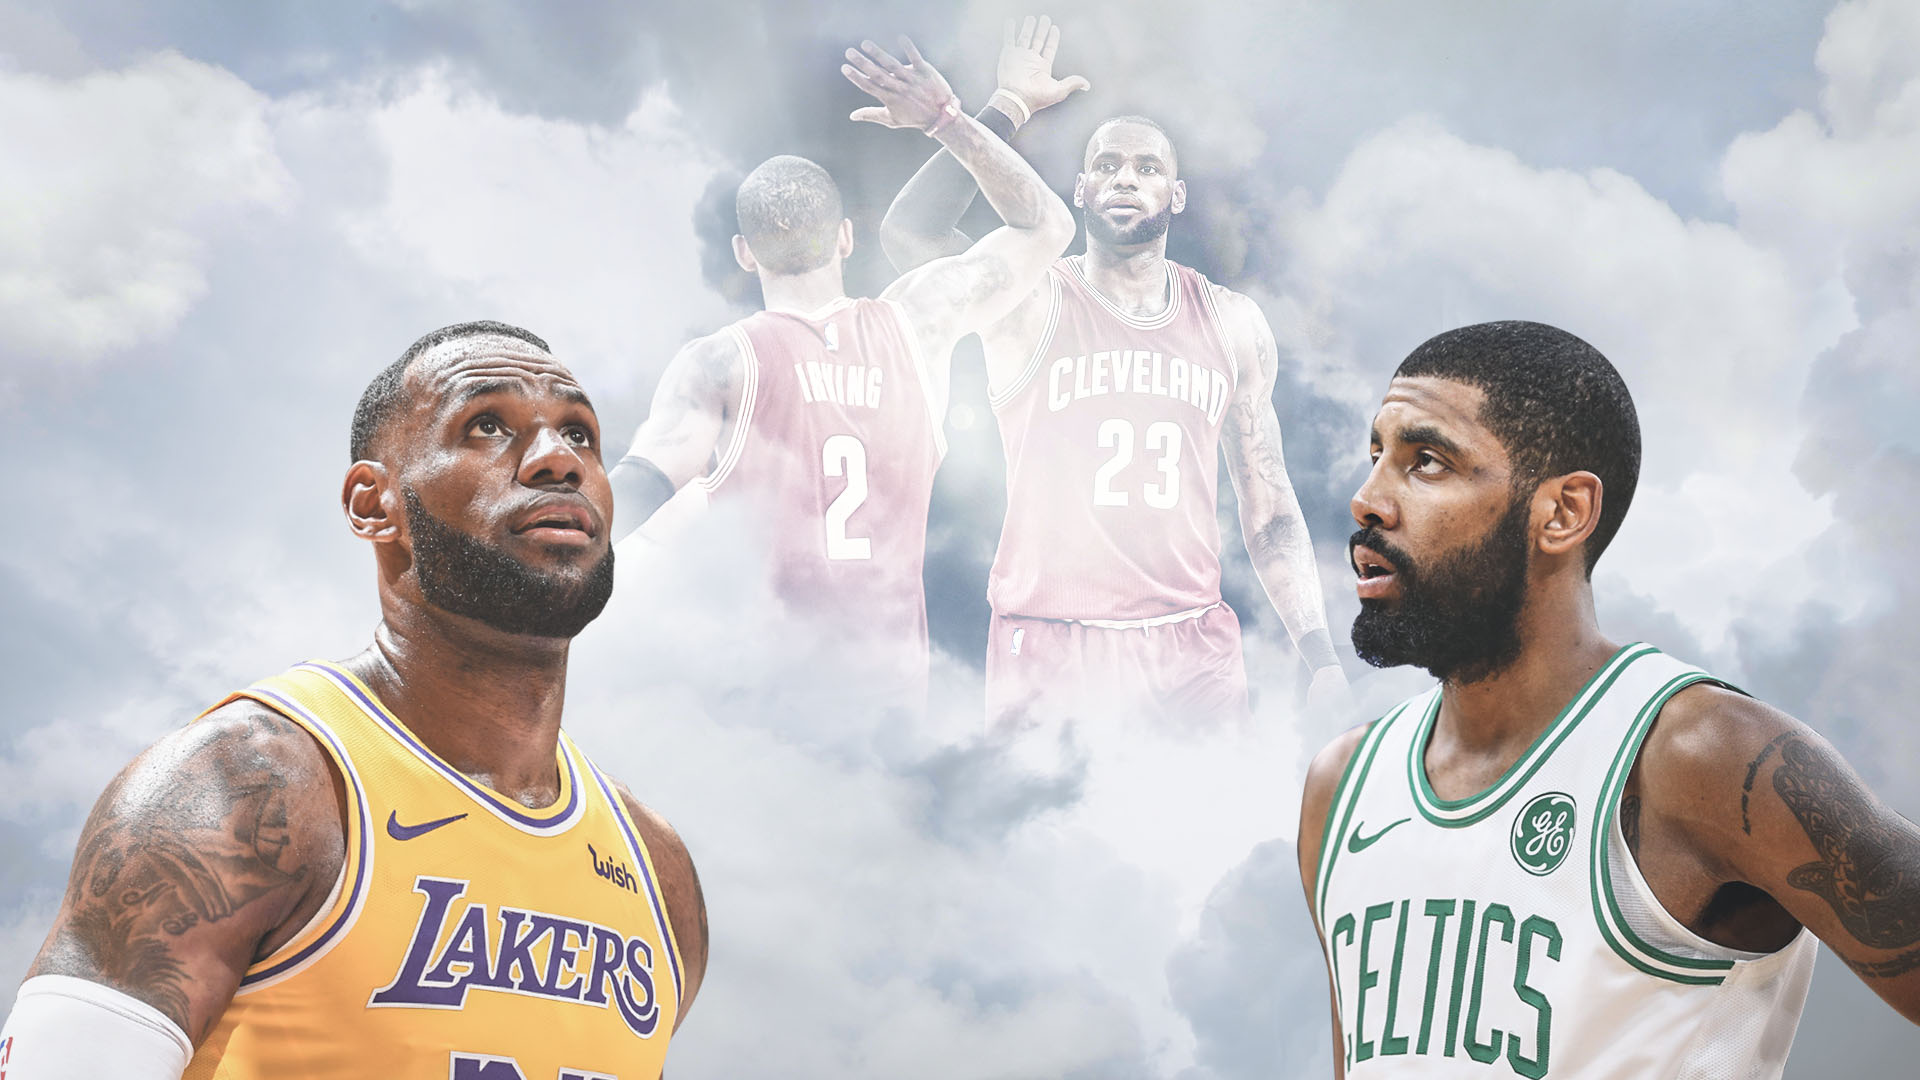 Kyrie And Lebron , HD Wallpaper & Backgrounds